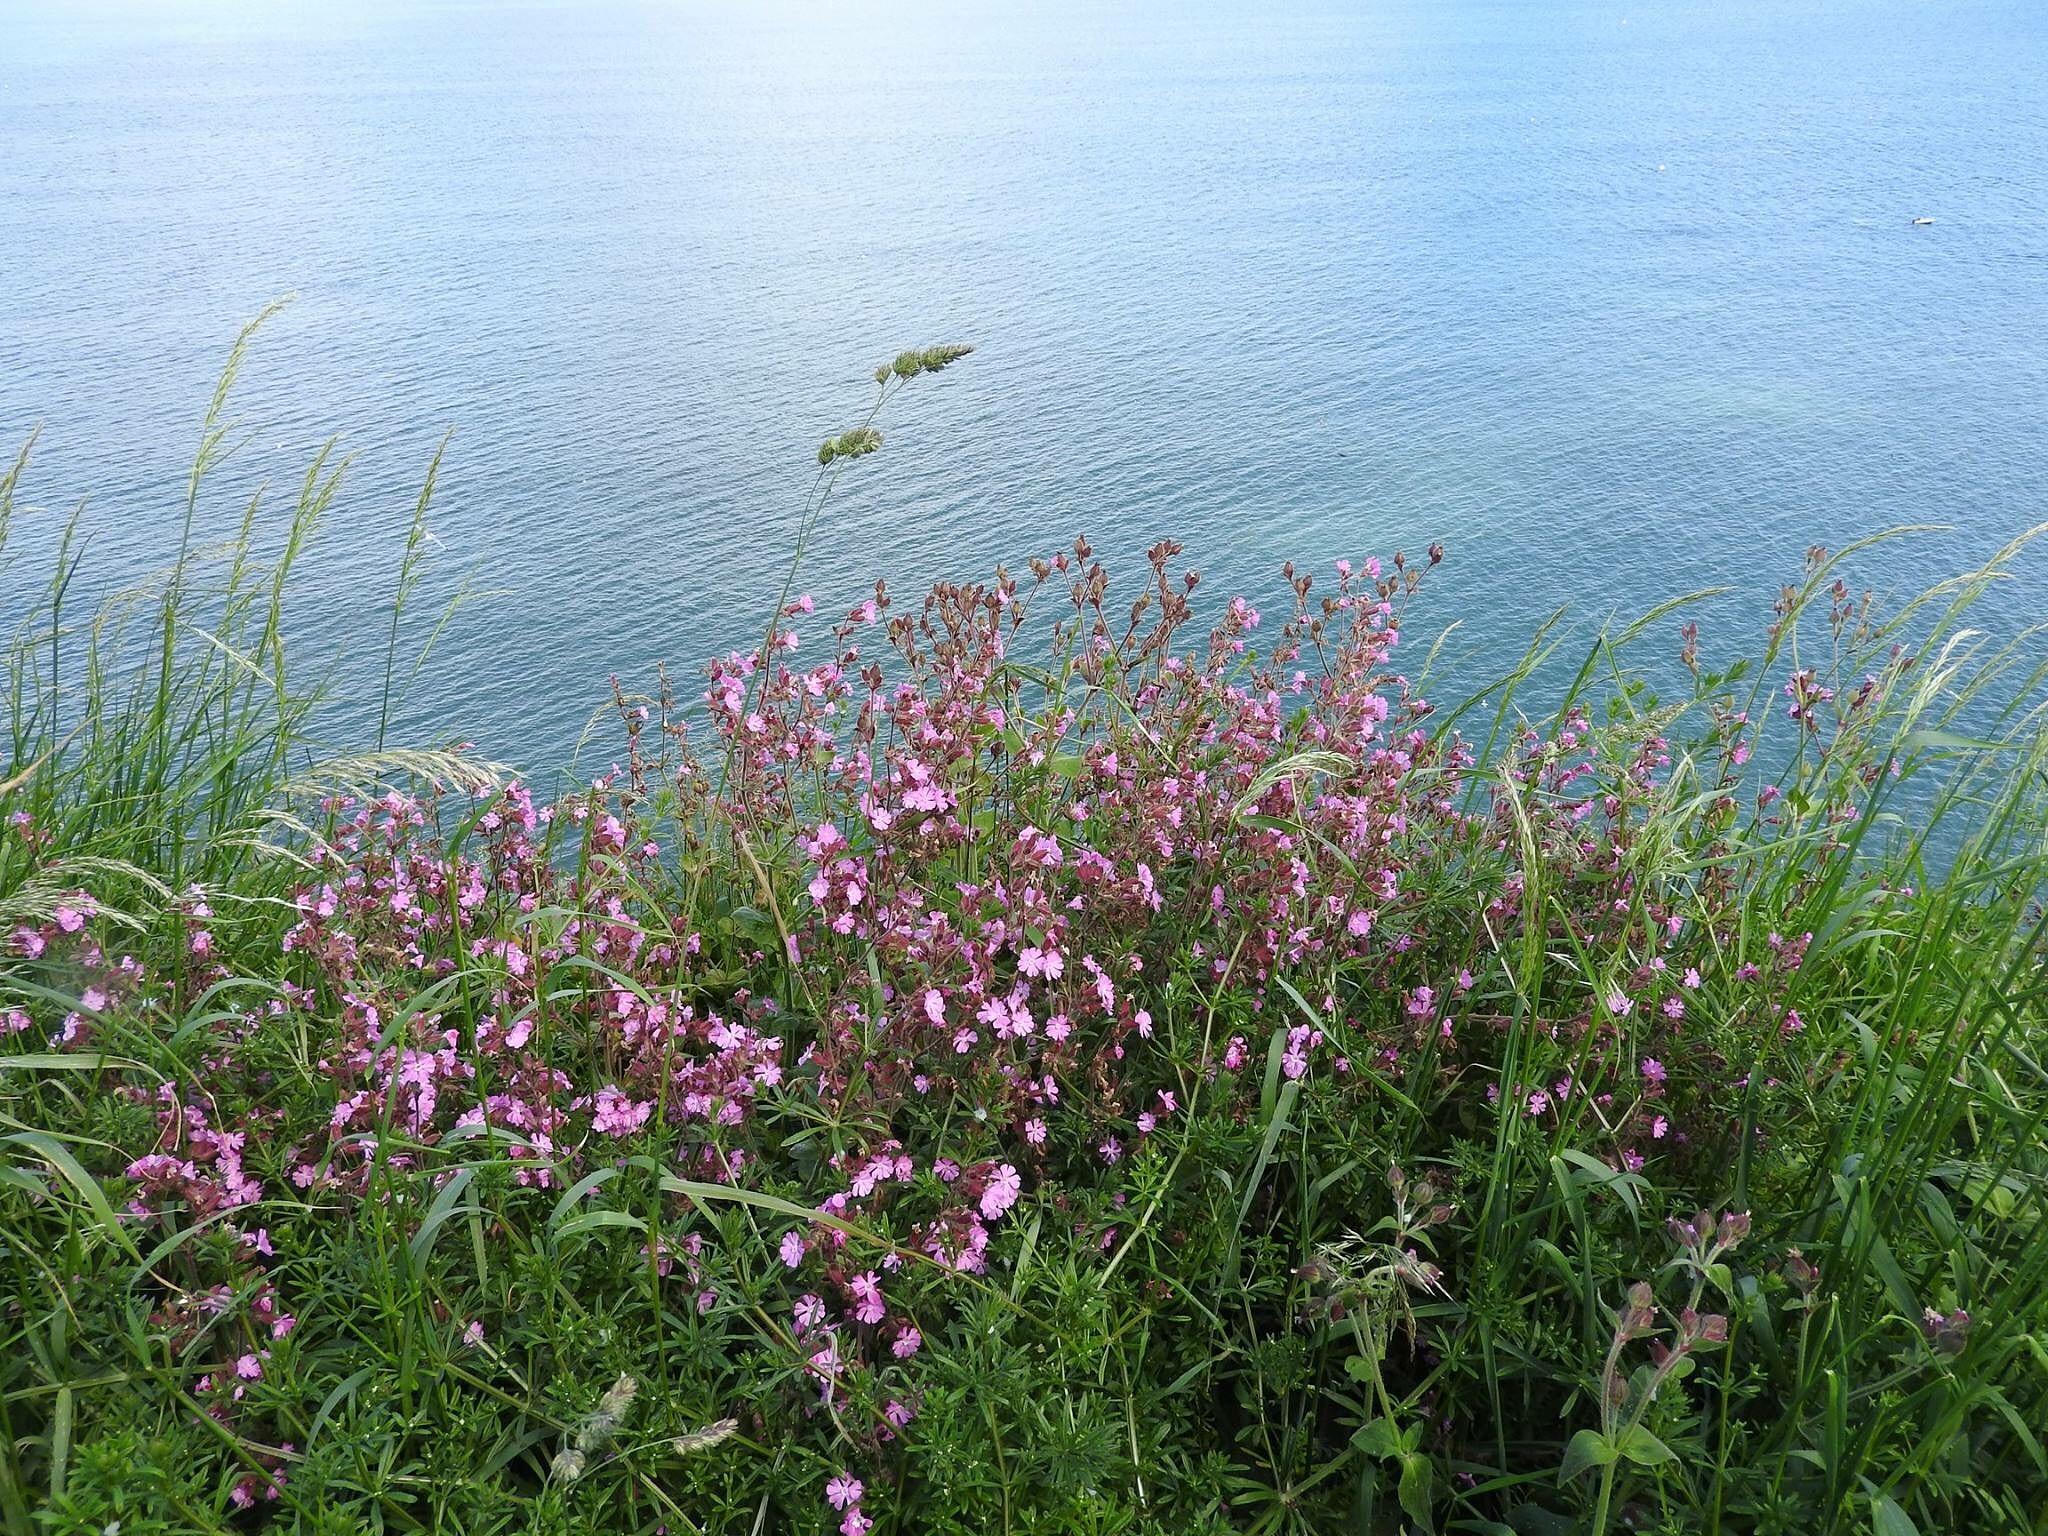 Flowers at bempton by Geeky1967